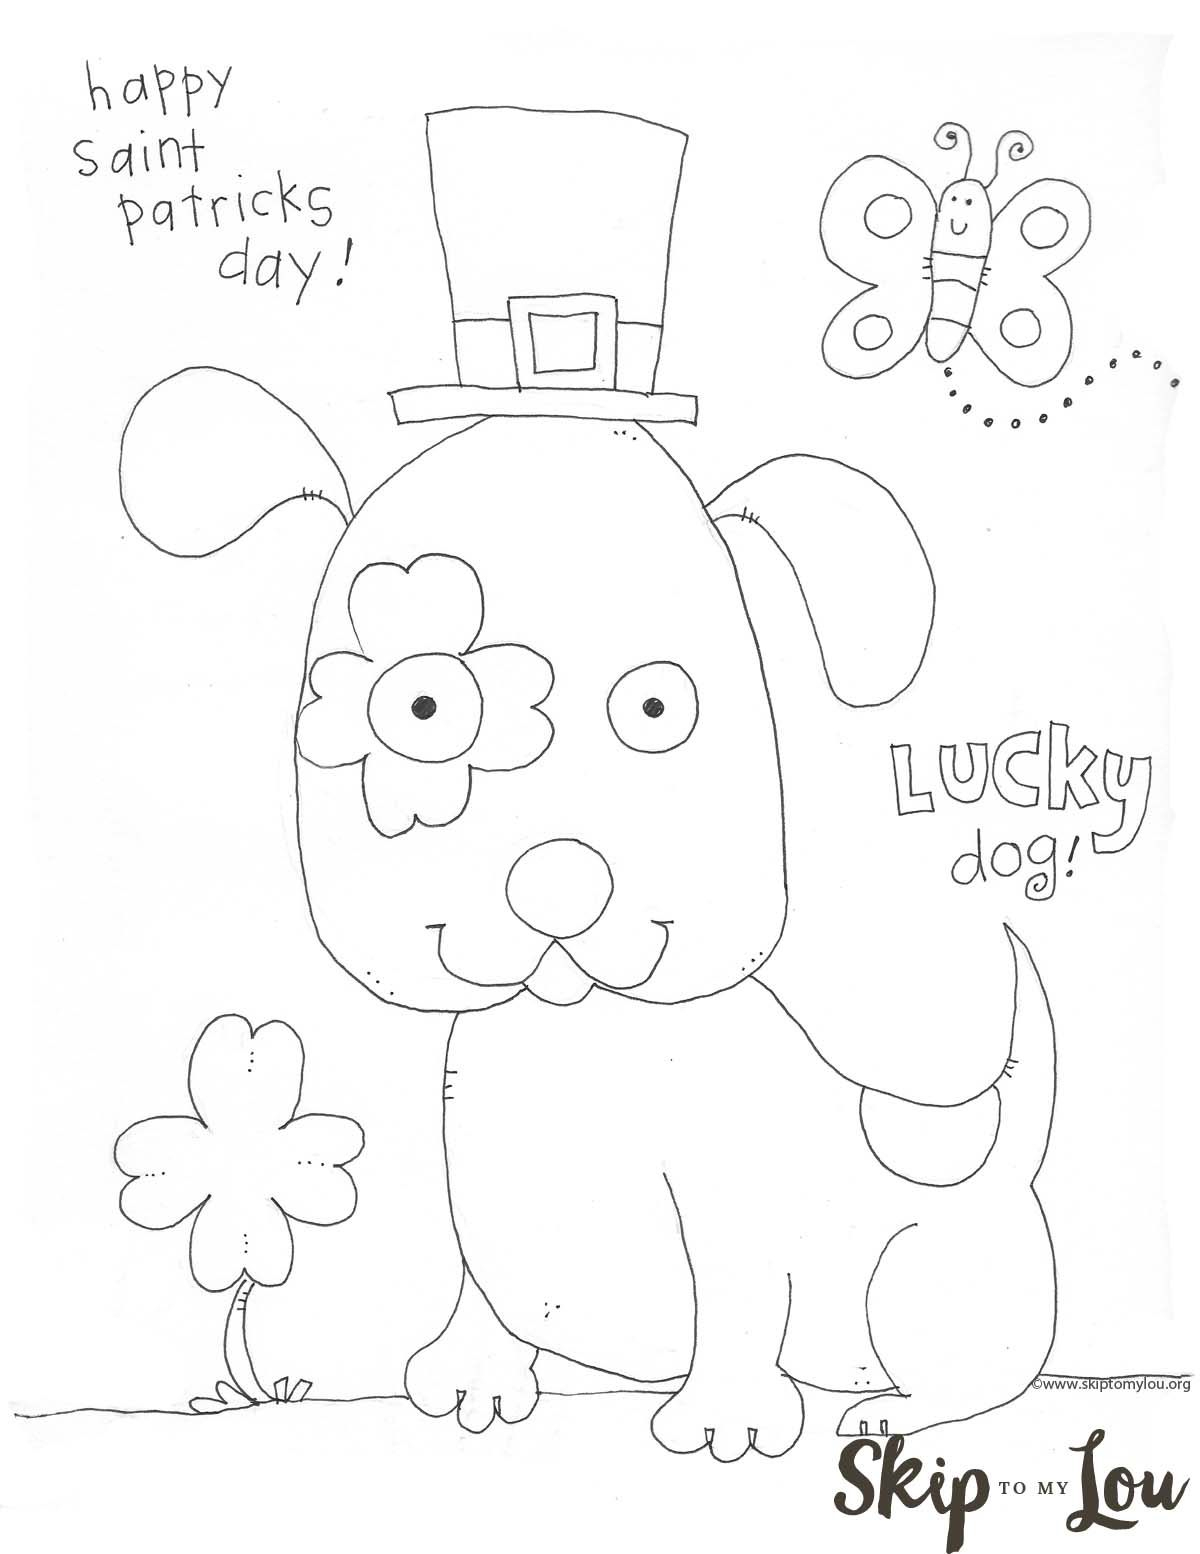 St. Patrick's Day Coloring Page Preschool- Free Printable | St - Free Printable Saint Patrick Coloring Pages